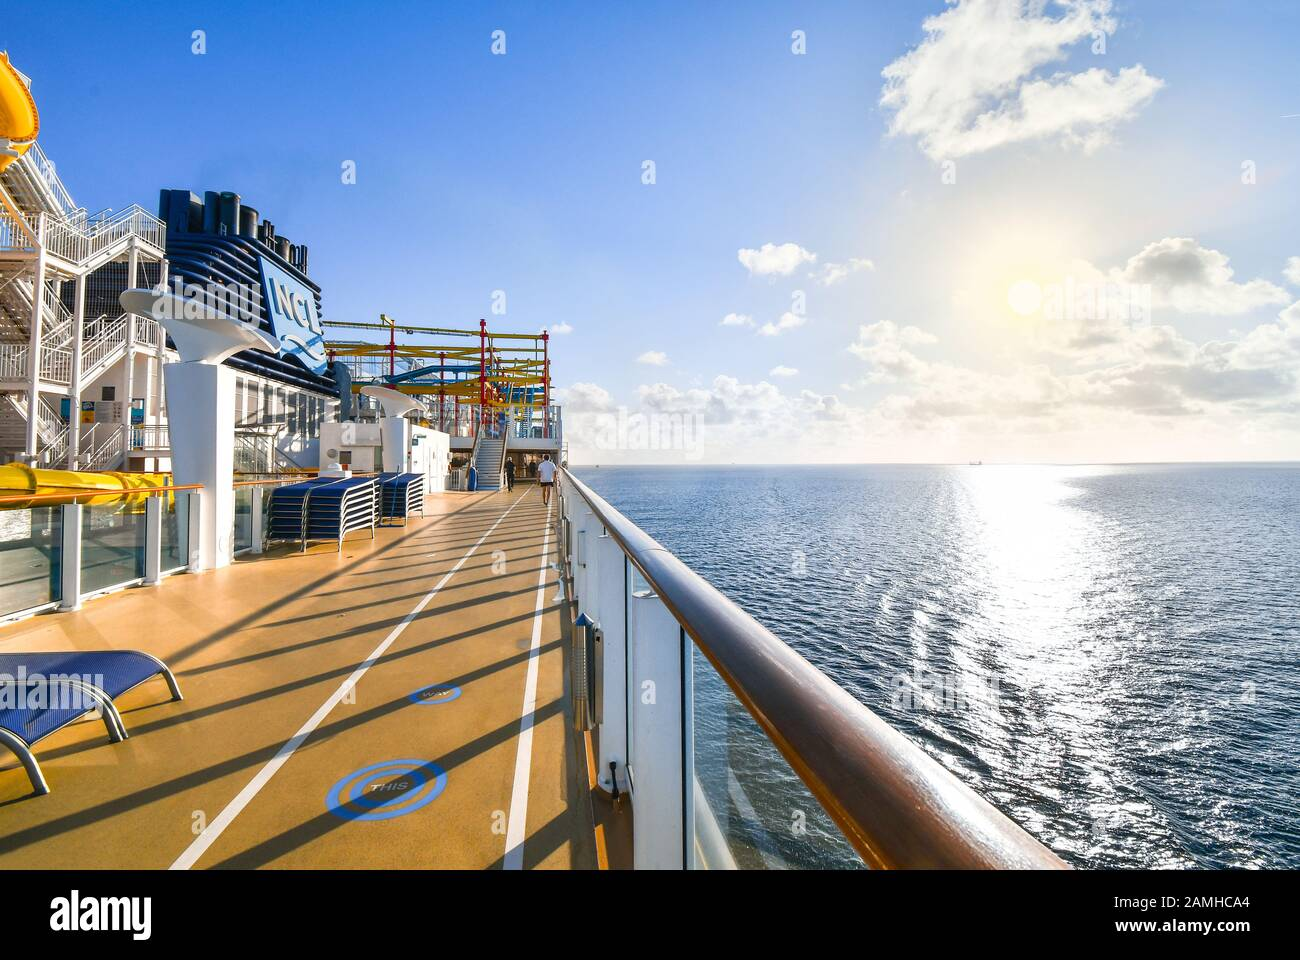 A cruise passenger uses the upper deck jogging and walking path on a luxury cruise liner with a ship in the distance on the Baltic Sea. Stock Photo